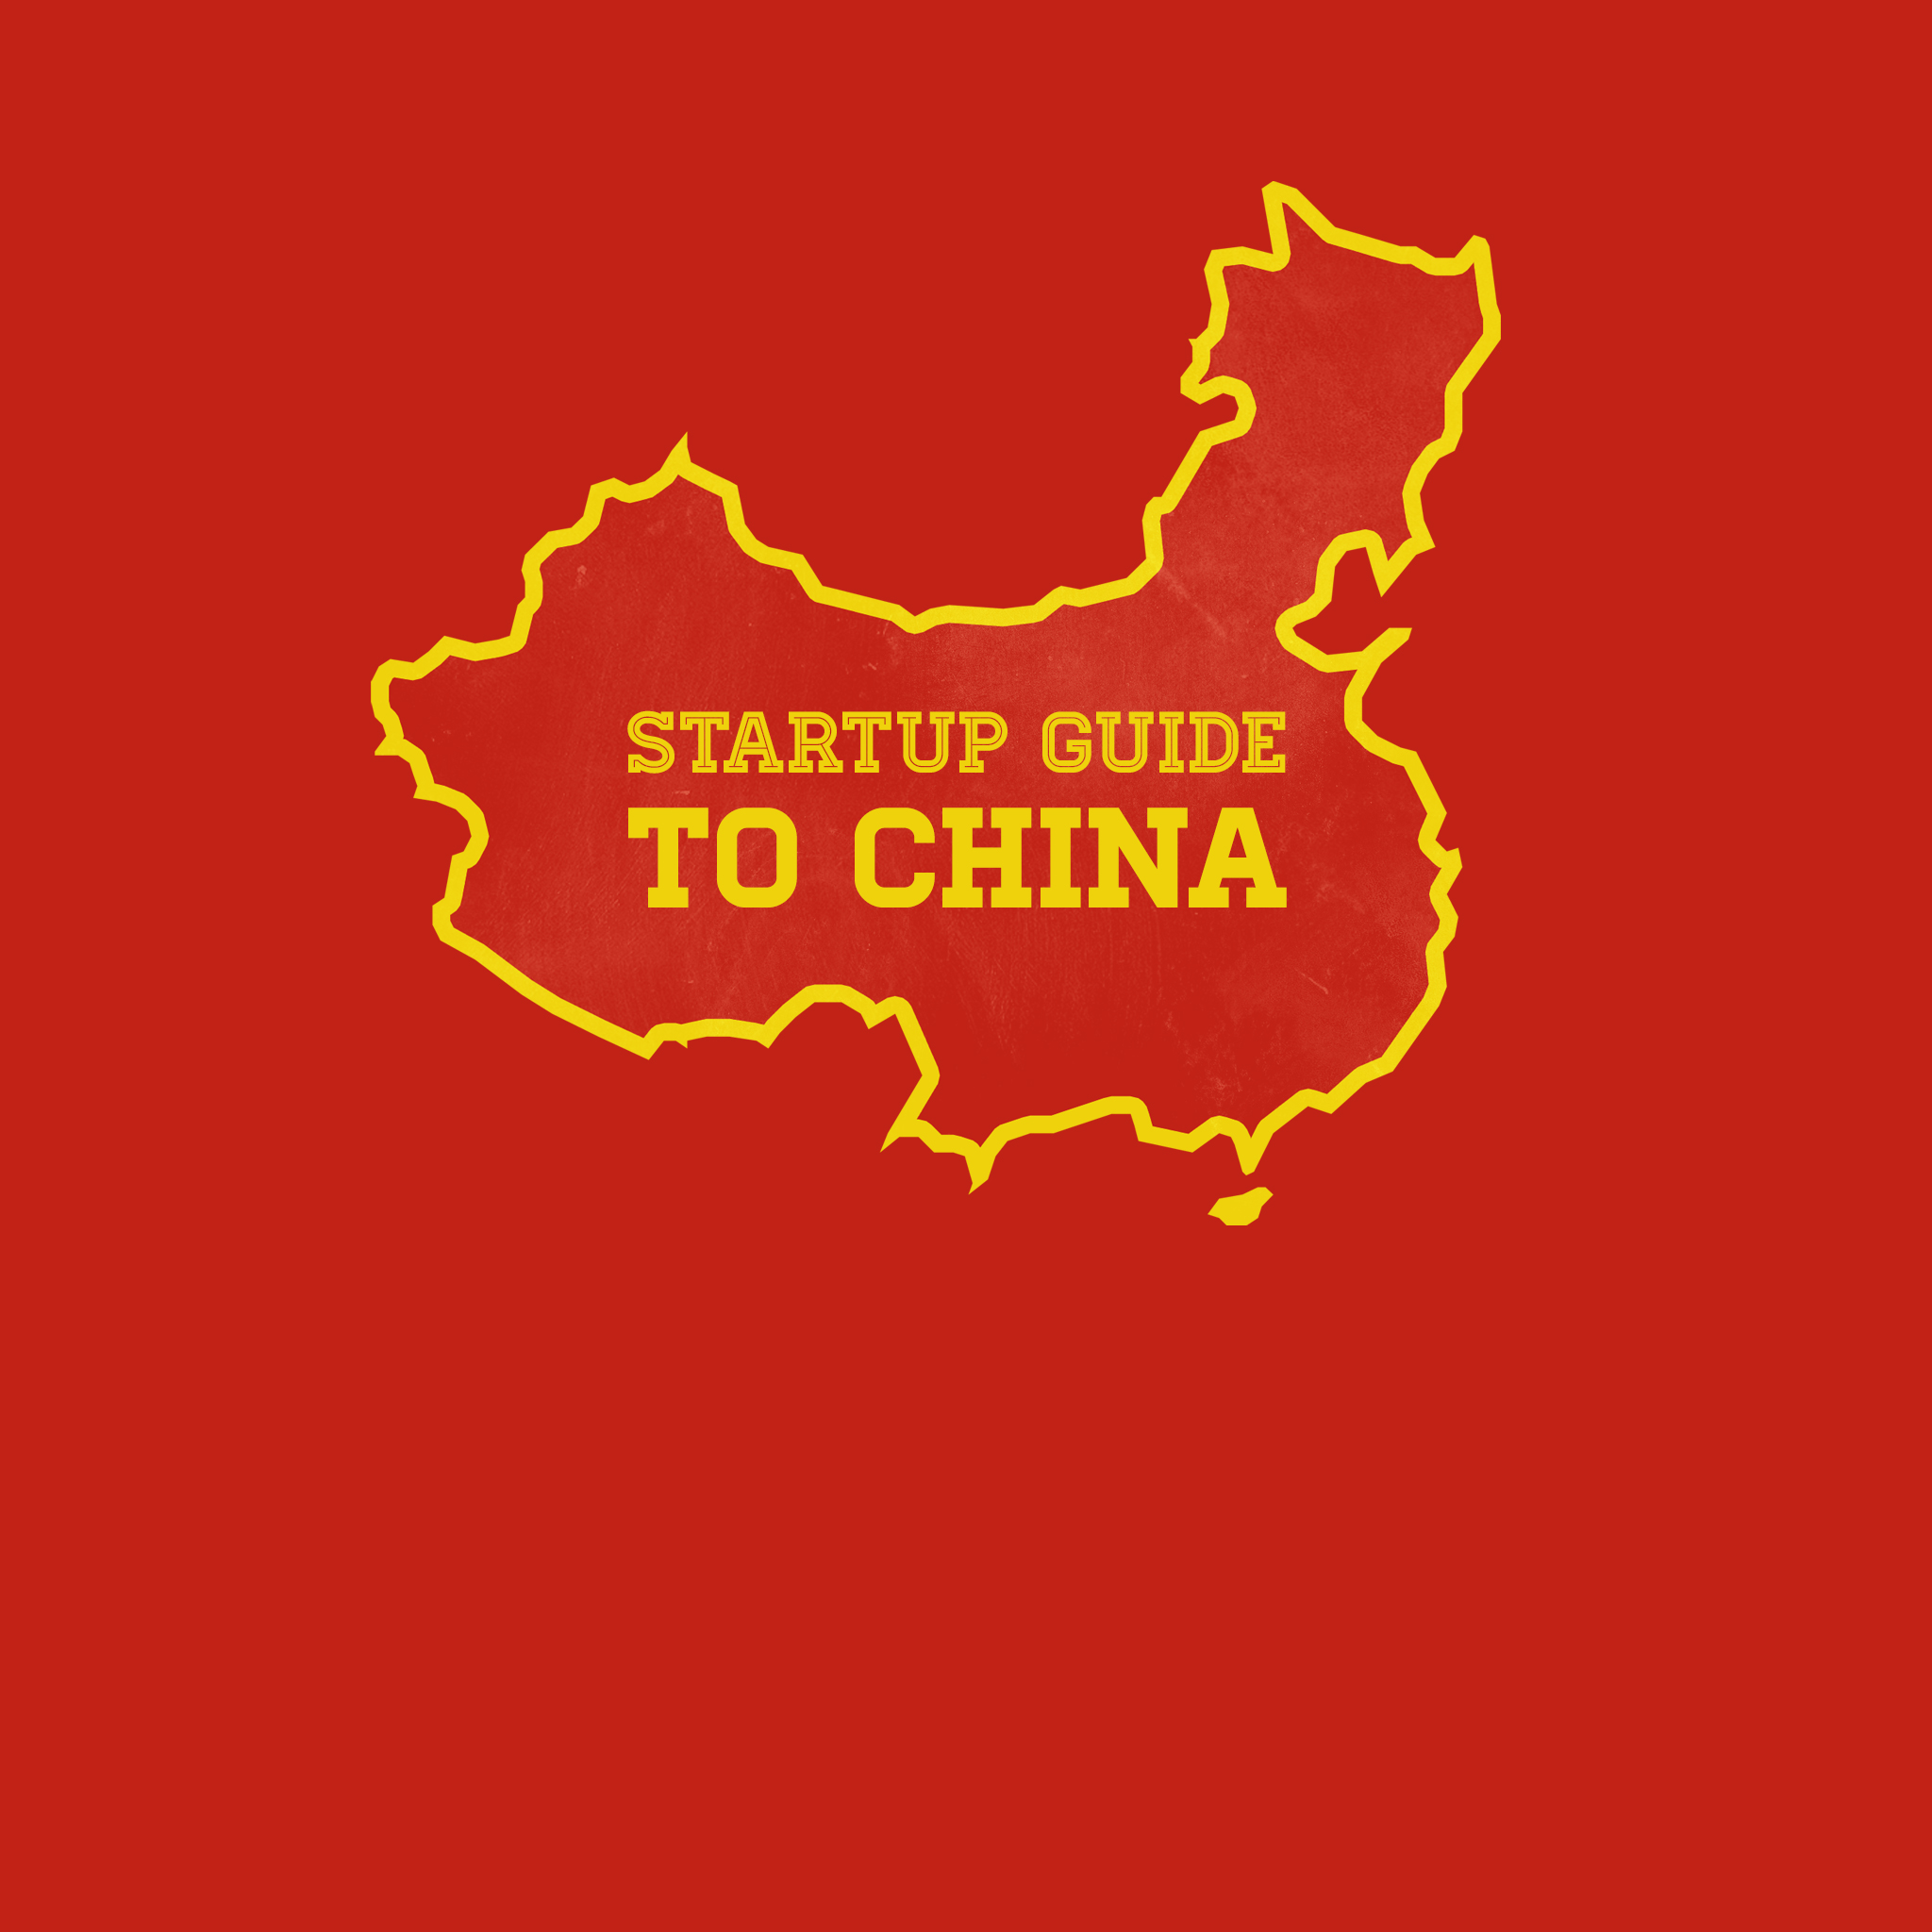 The startup guide to China